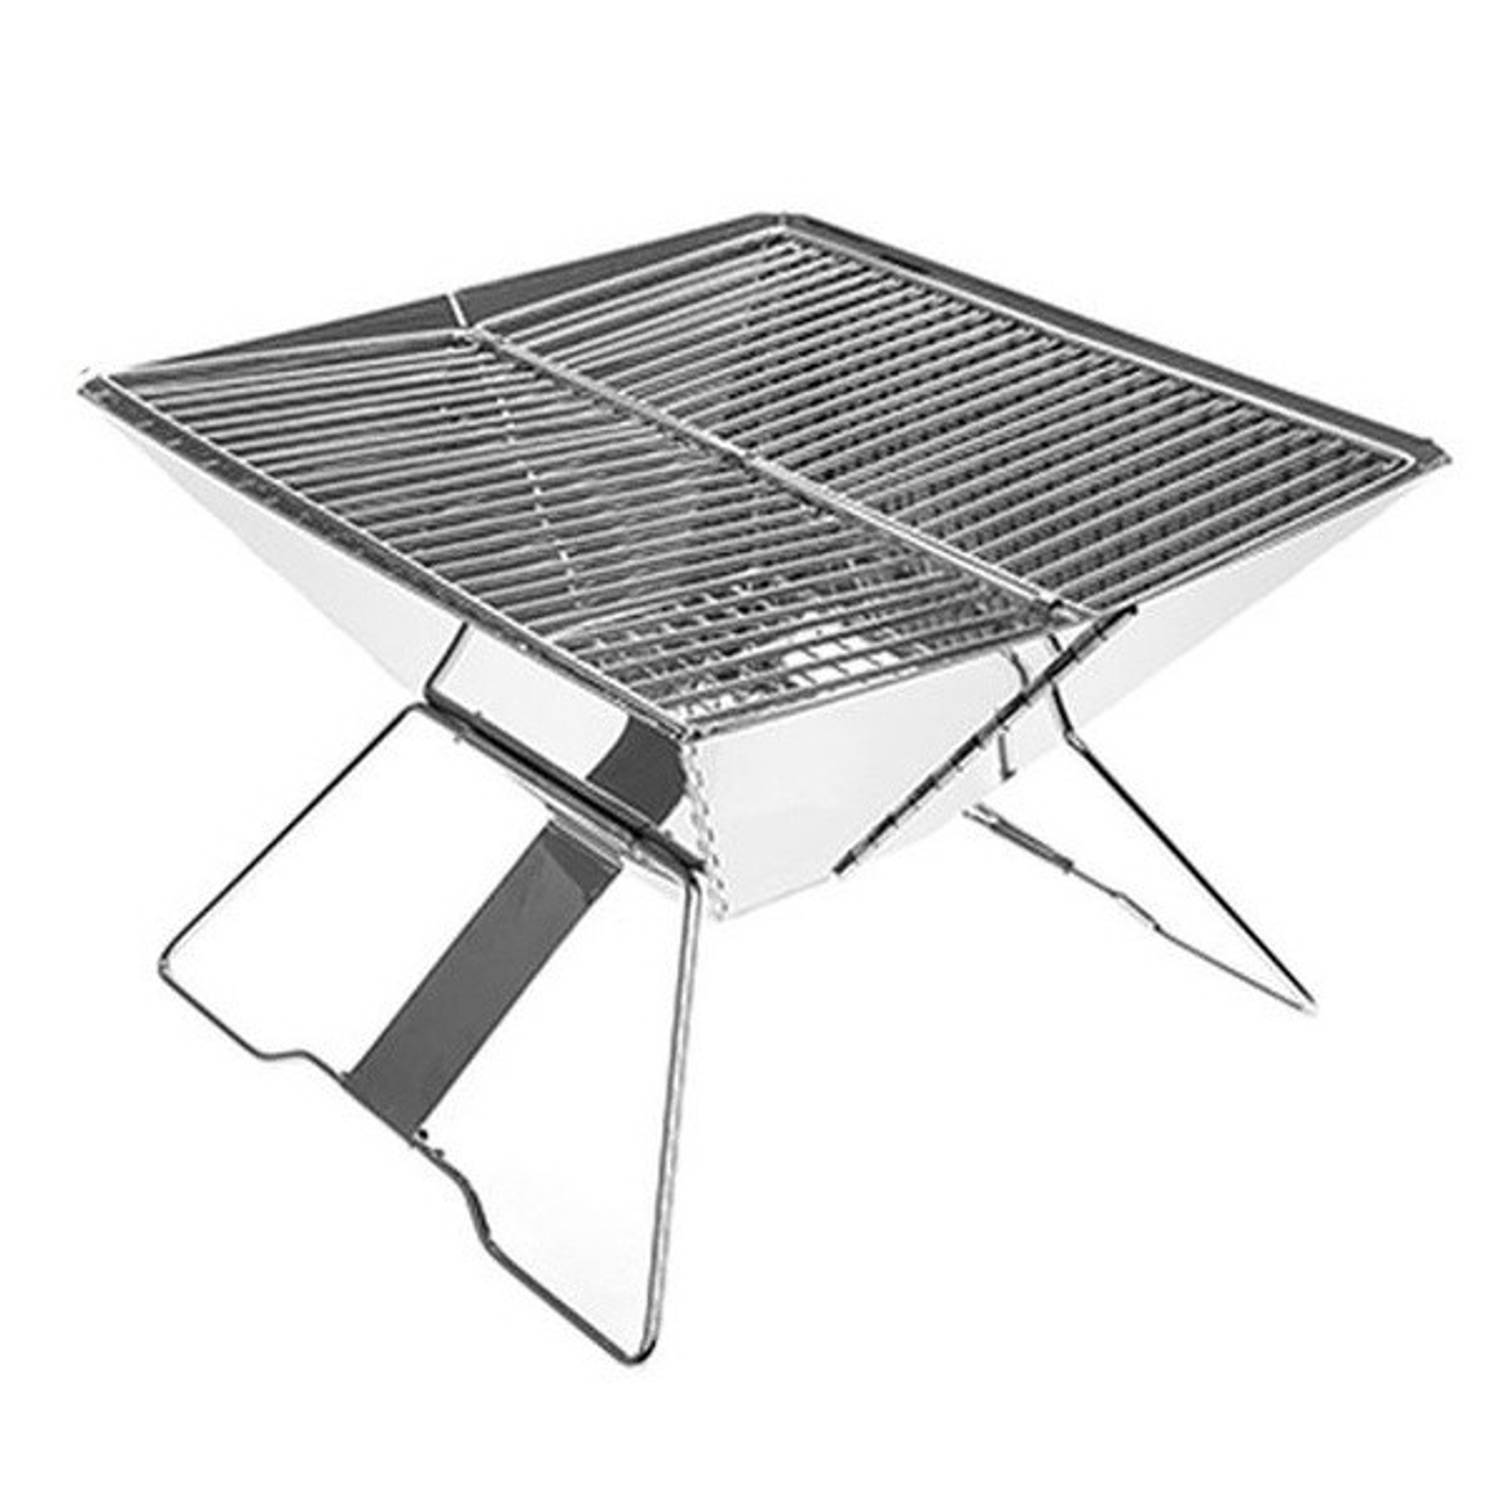 Summit luxe opvouwbare barbecue